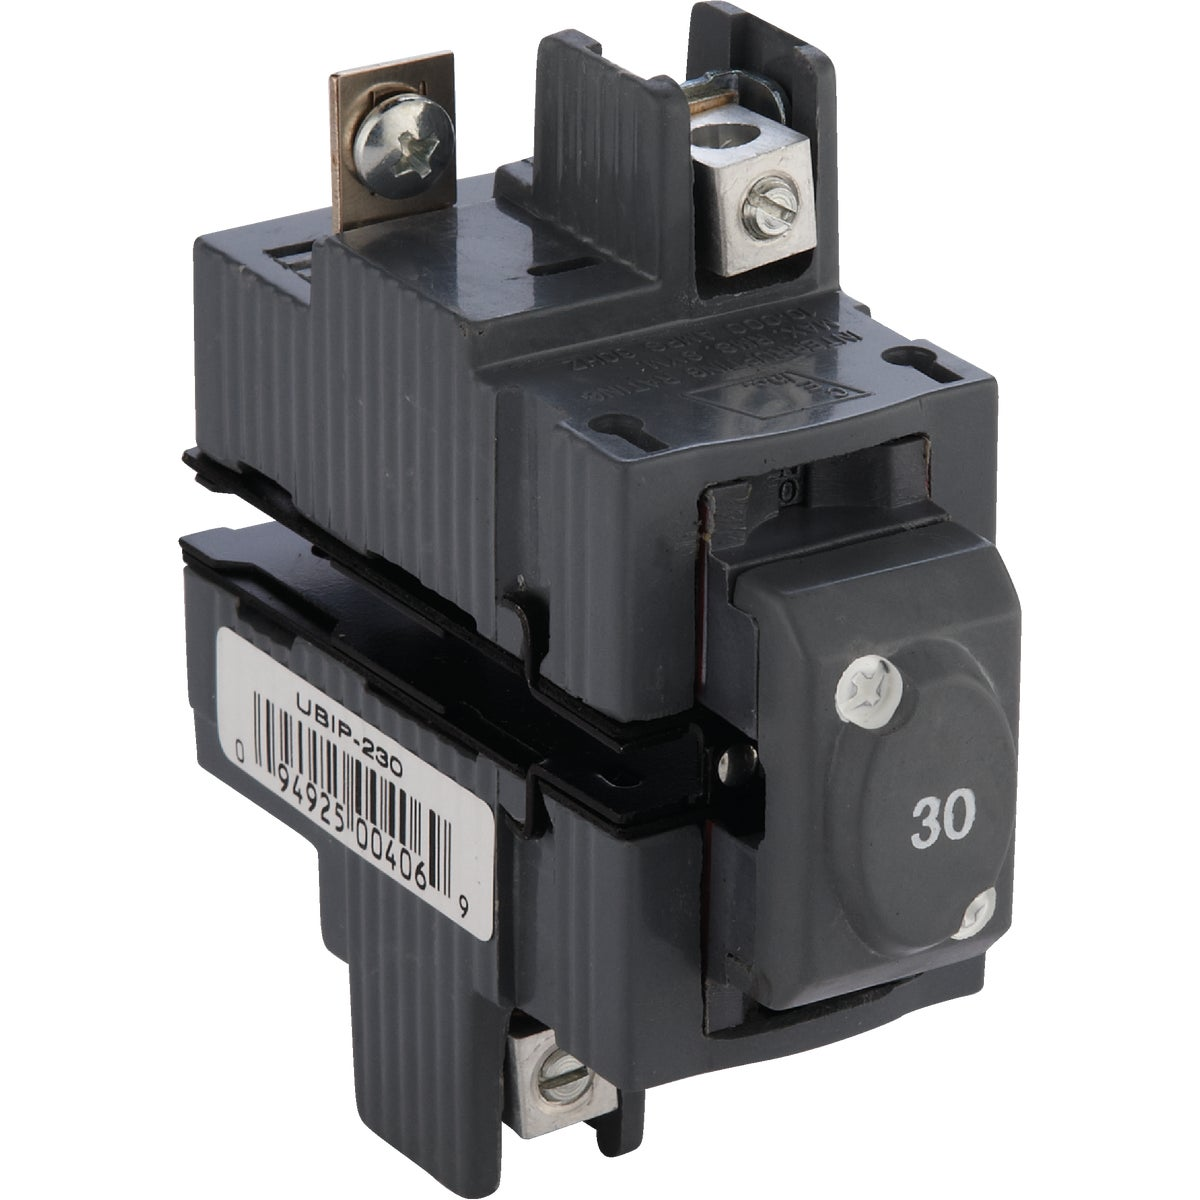 30A 2P CIRCUIT BREAKER - UBIP230 by Connecticut Electric